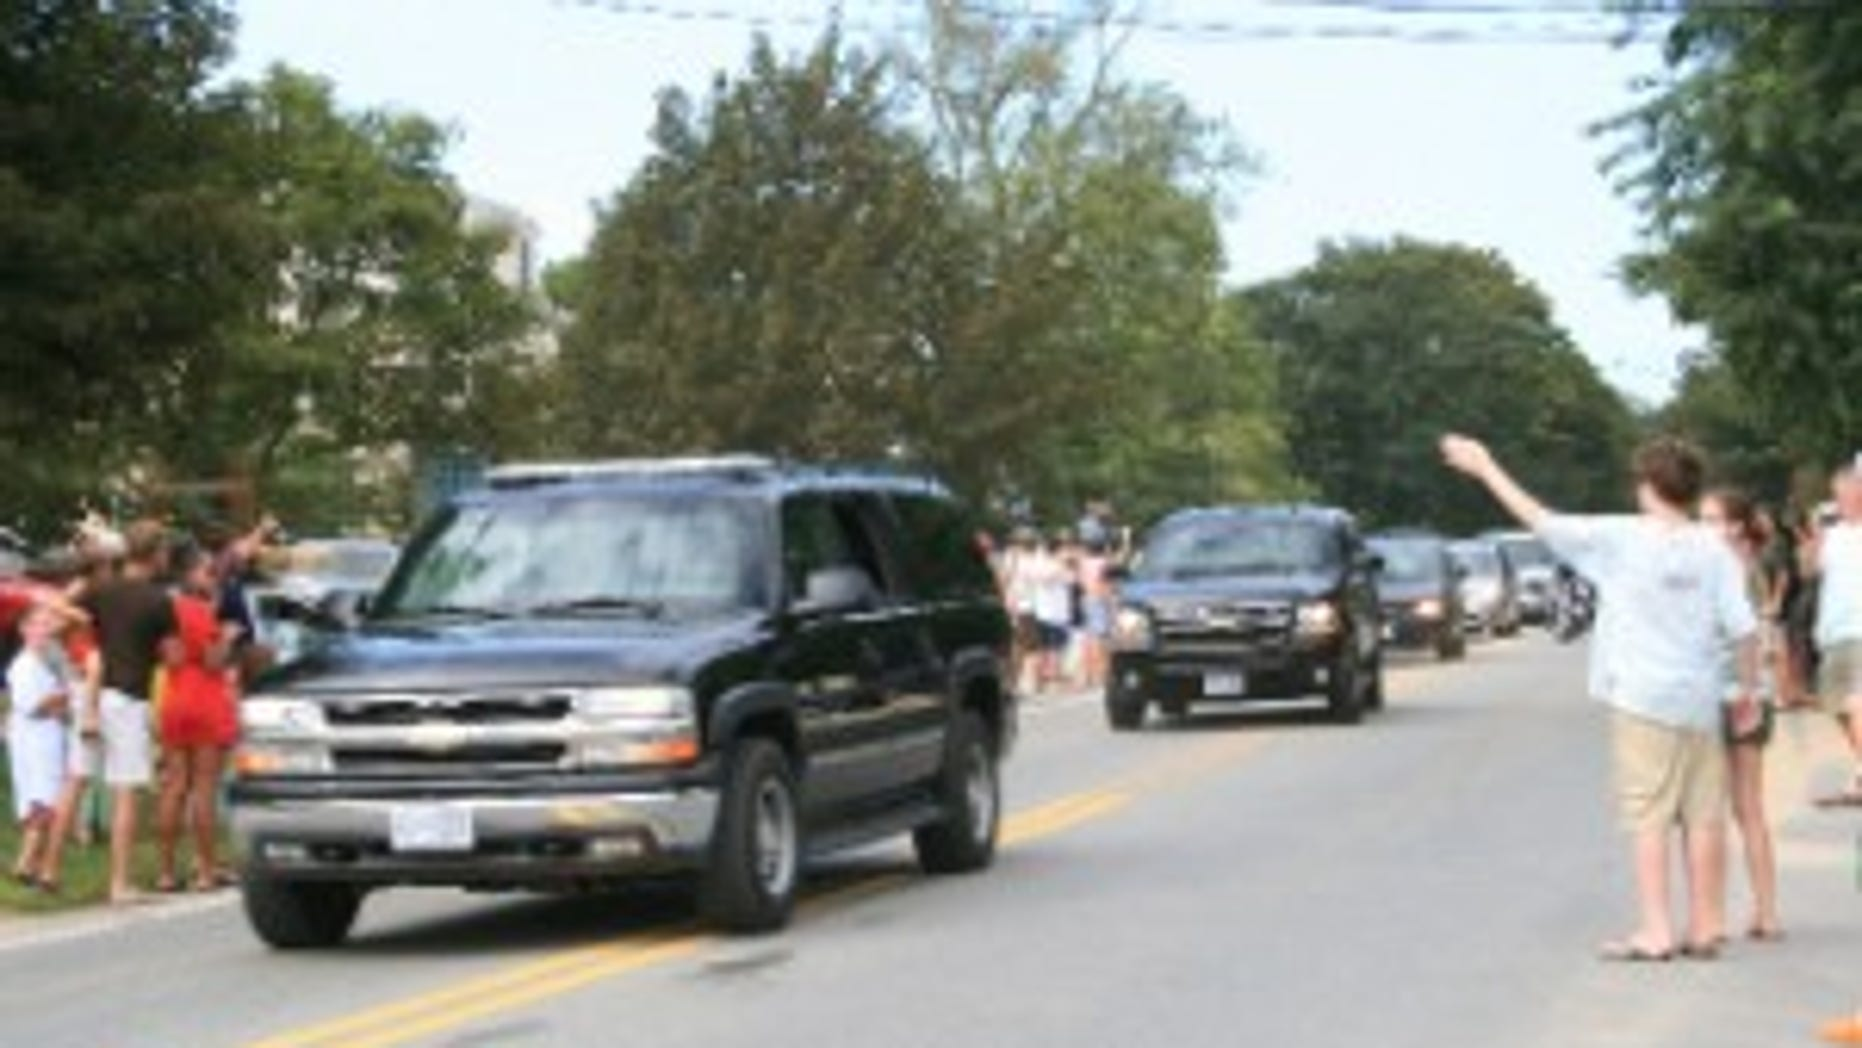 The President's motorcade makes its way past supporters. Fox Photo by Janice Haefeli